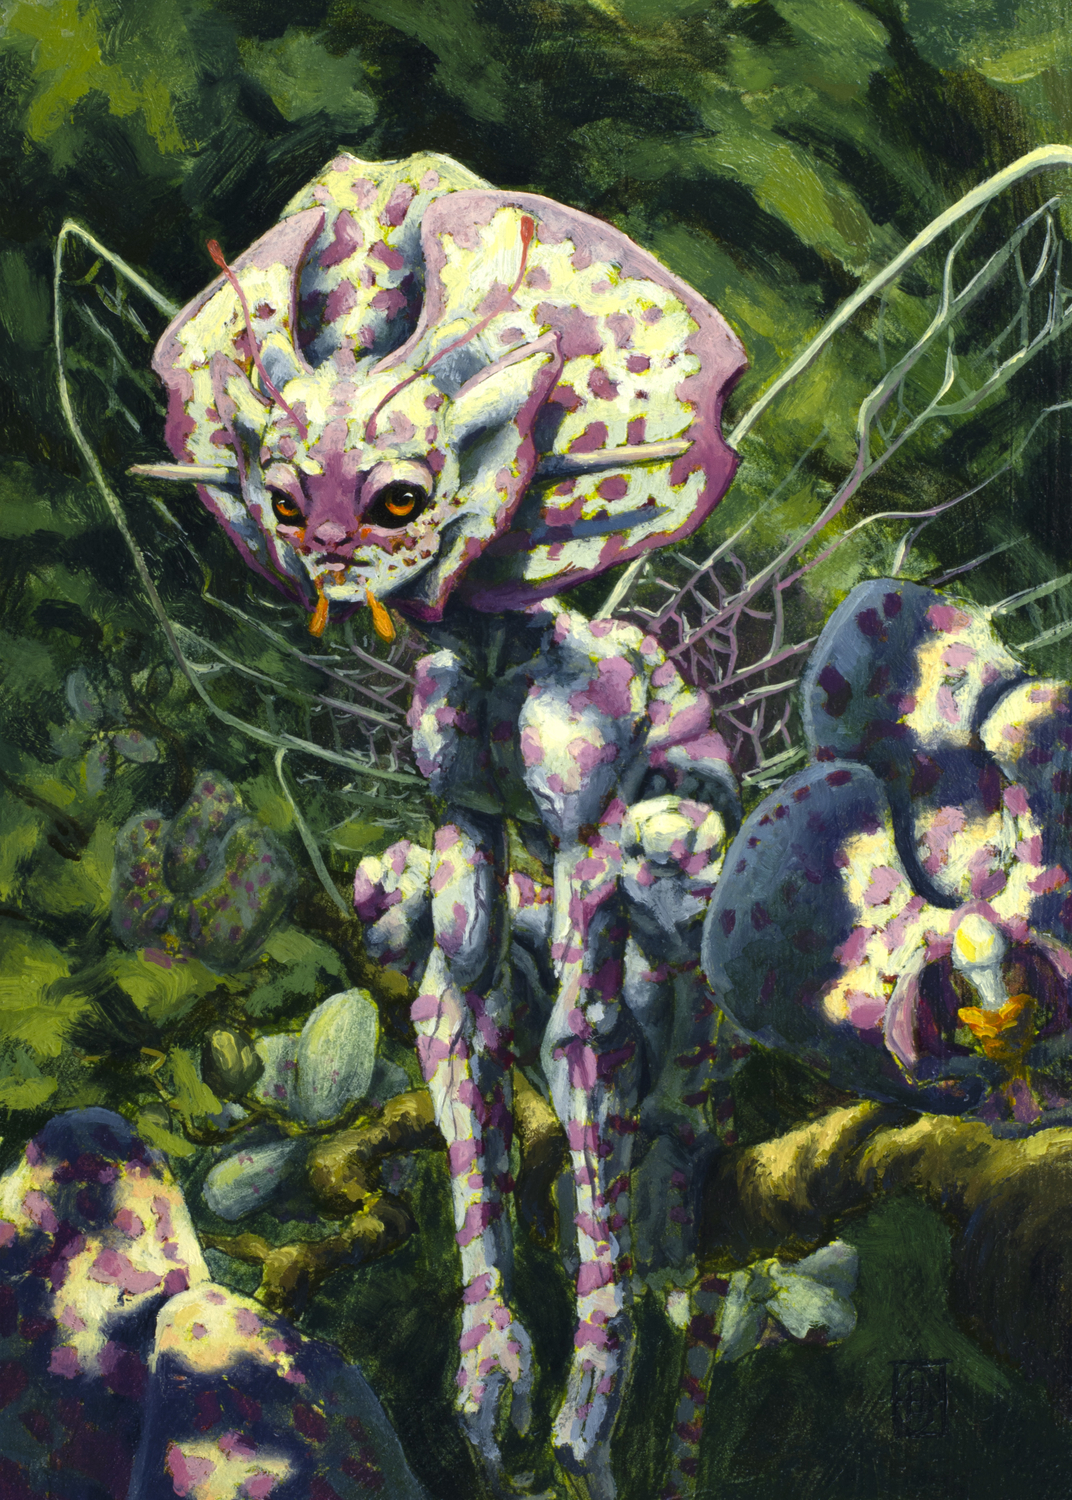 Orchid Fairy 3 Artwork by Corban Hubler